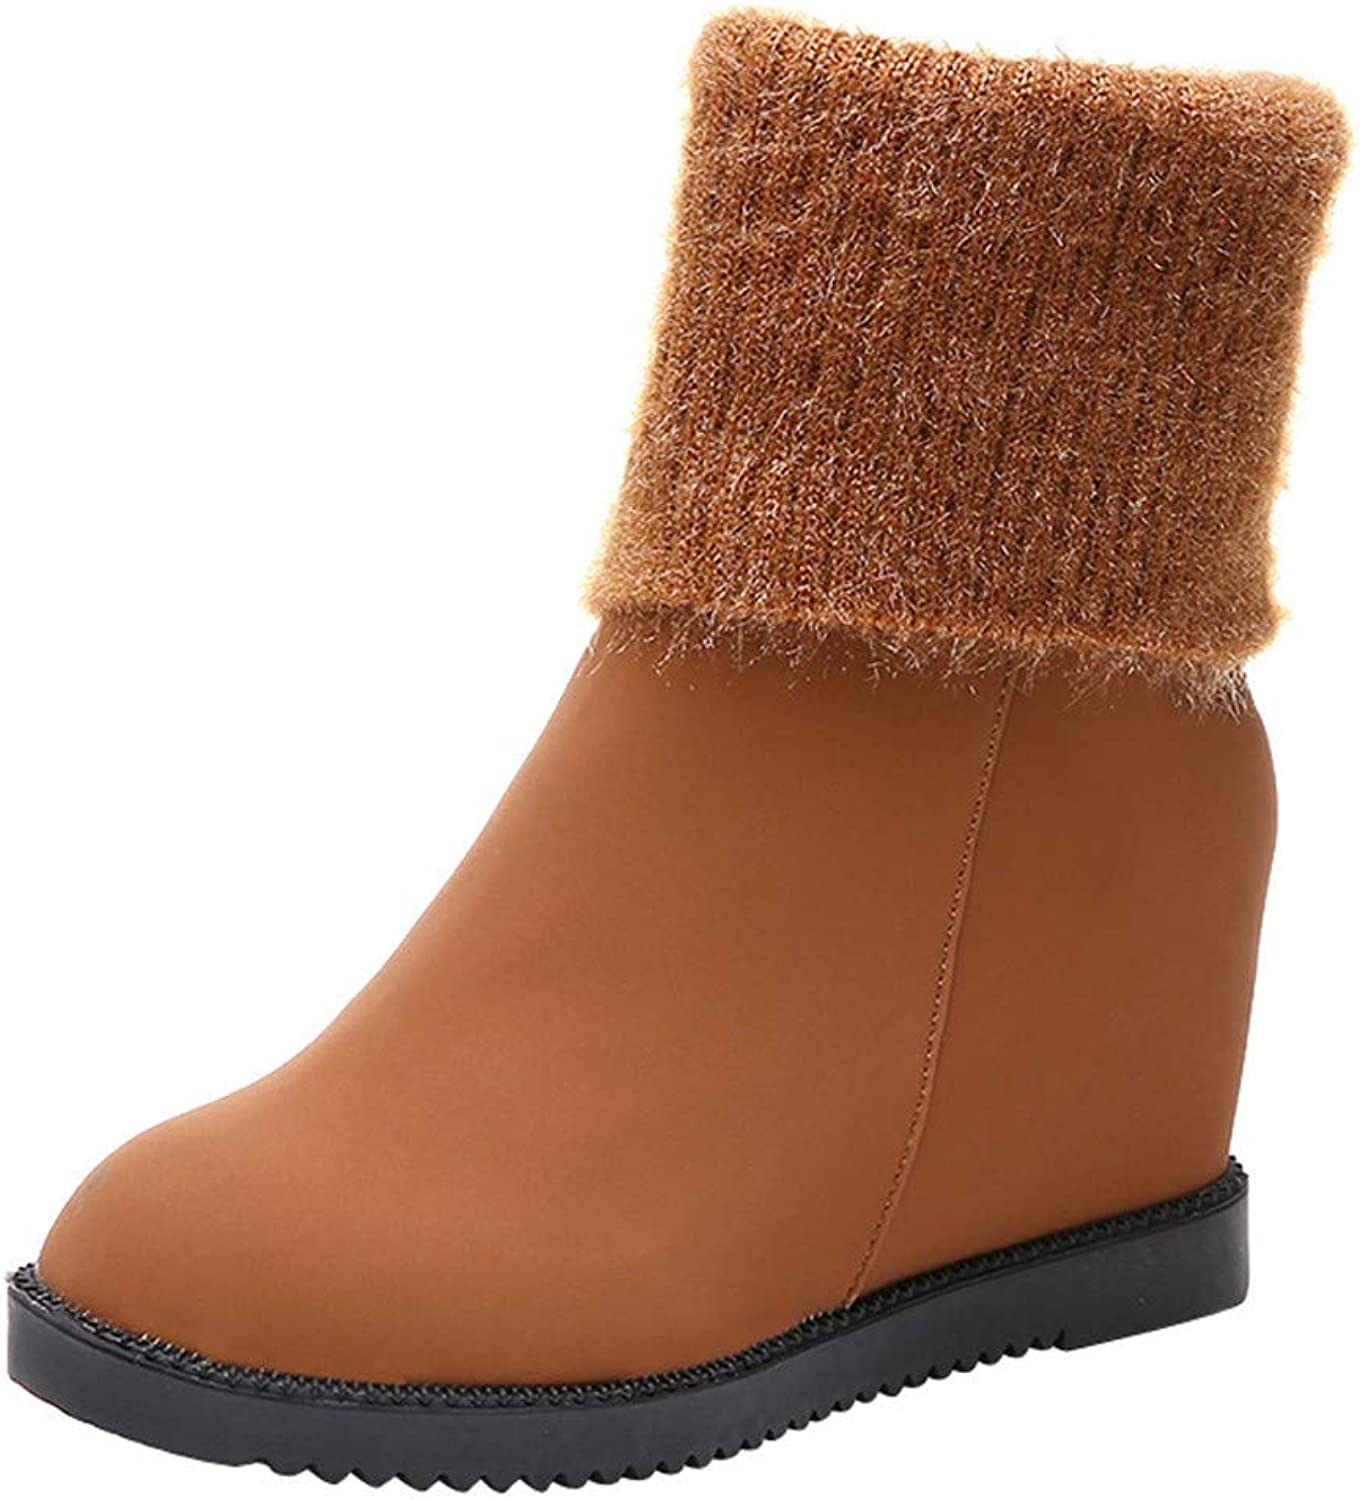 JaHGDU Women's Wedges shoes Snow Boots Suede Keep Warm Leather Slip On Boots Round Toe shoes Leisure Cosy Wild Tight Super Elegant Casual Quality for Womens